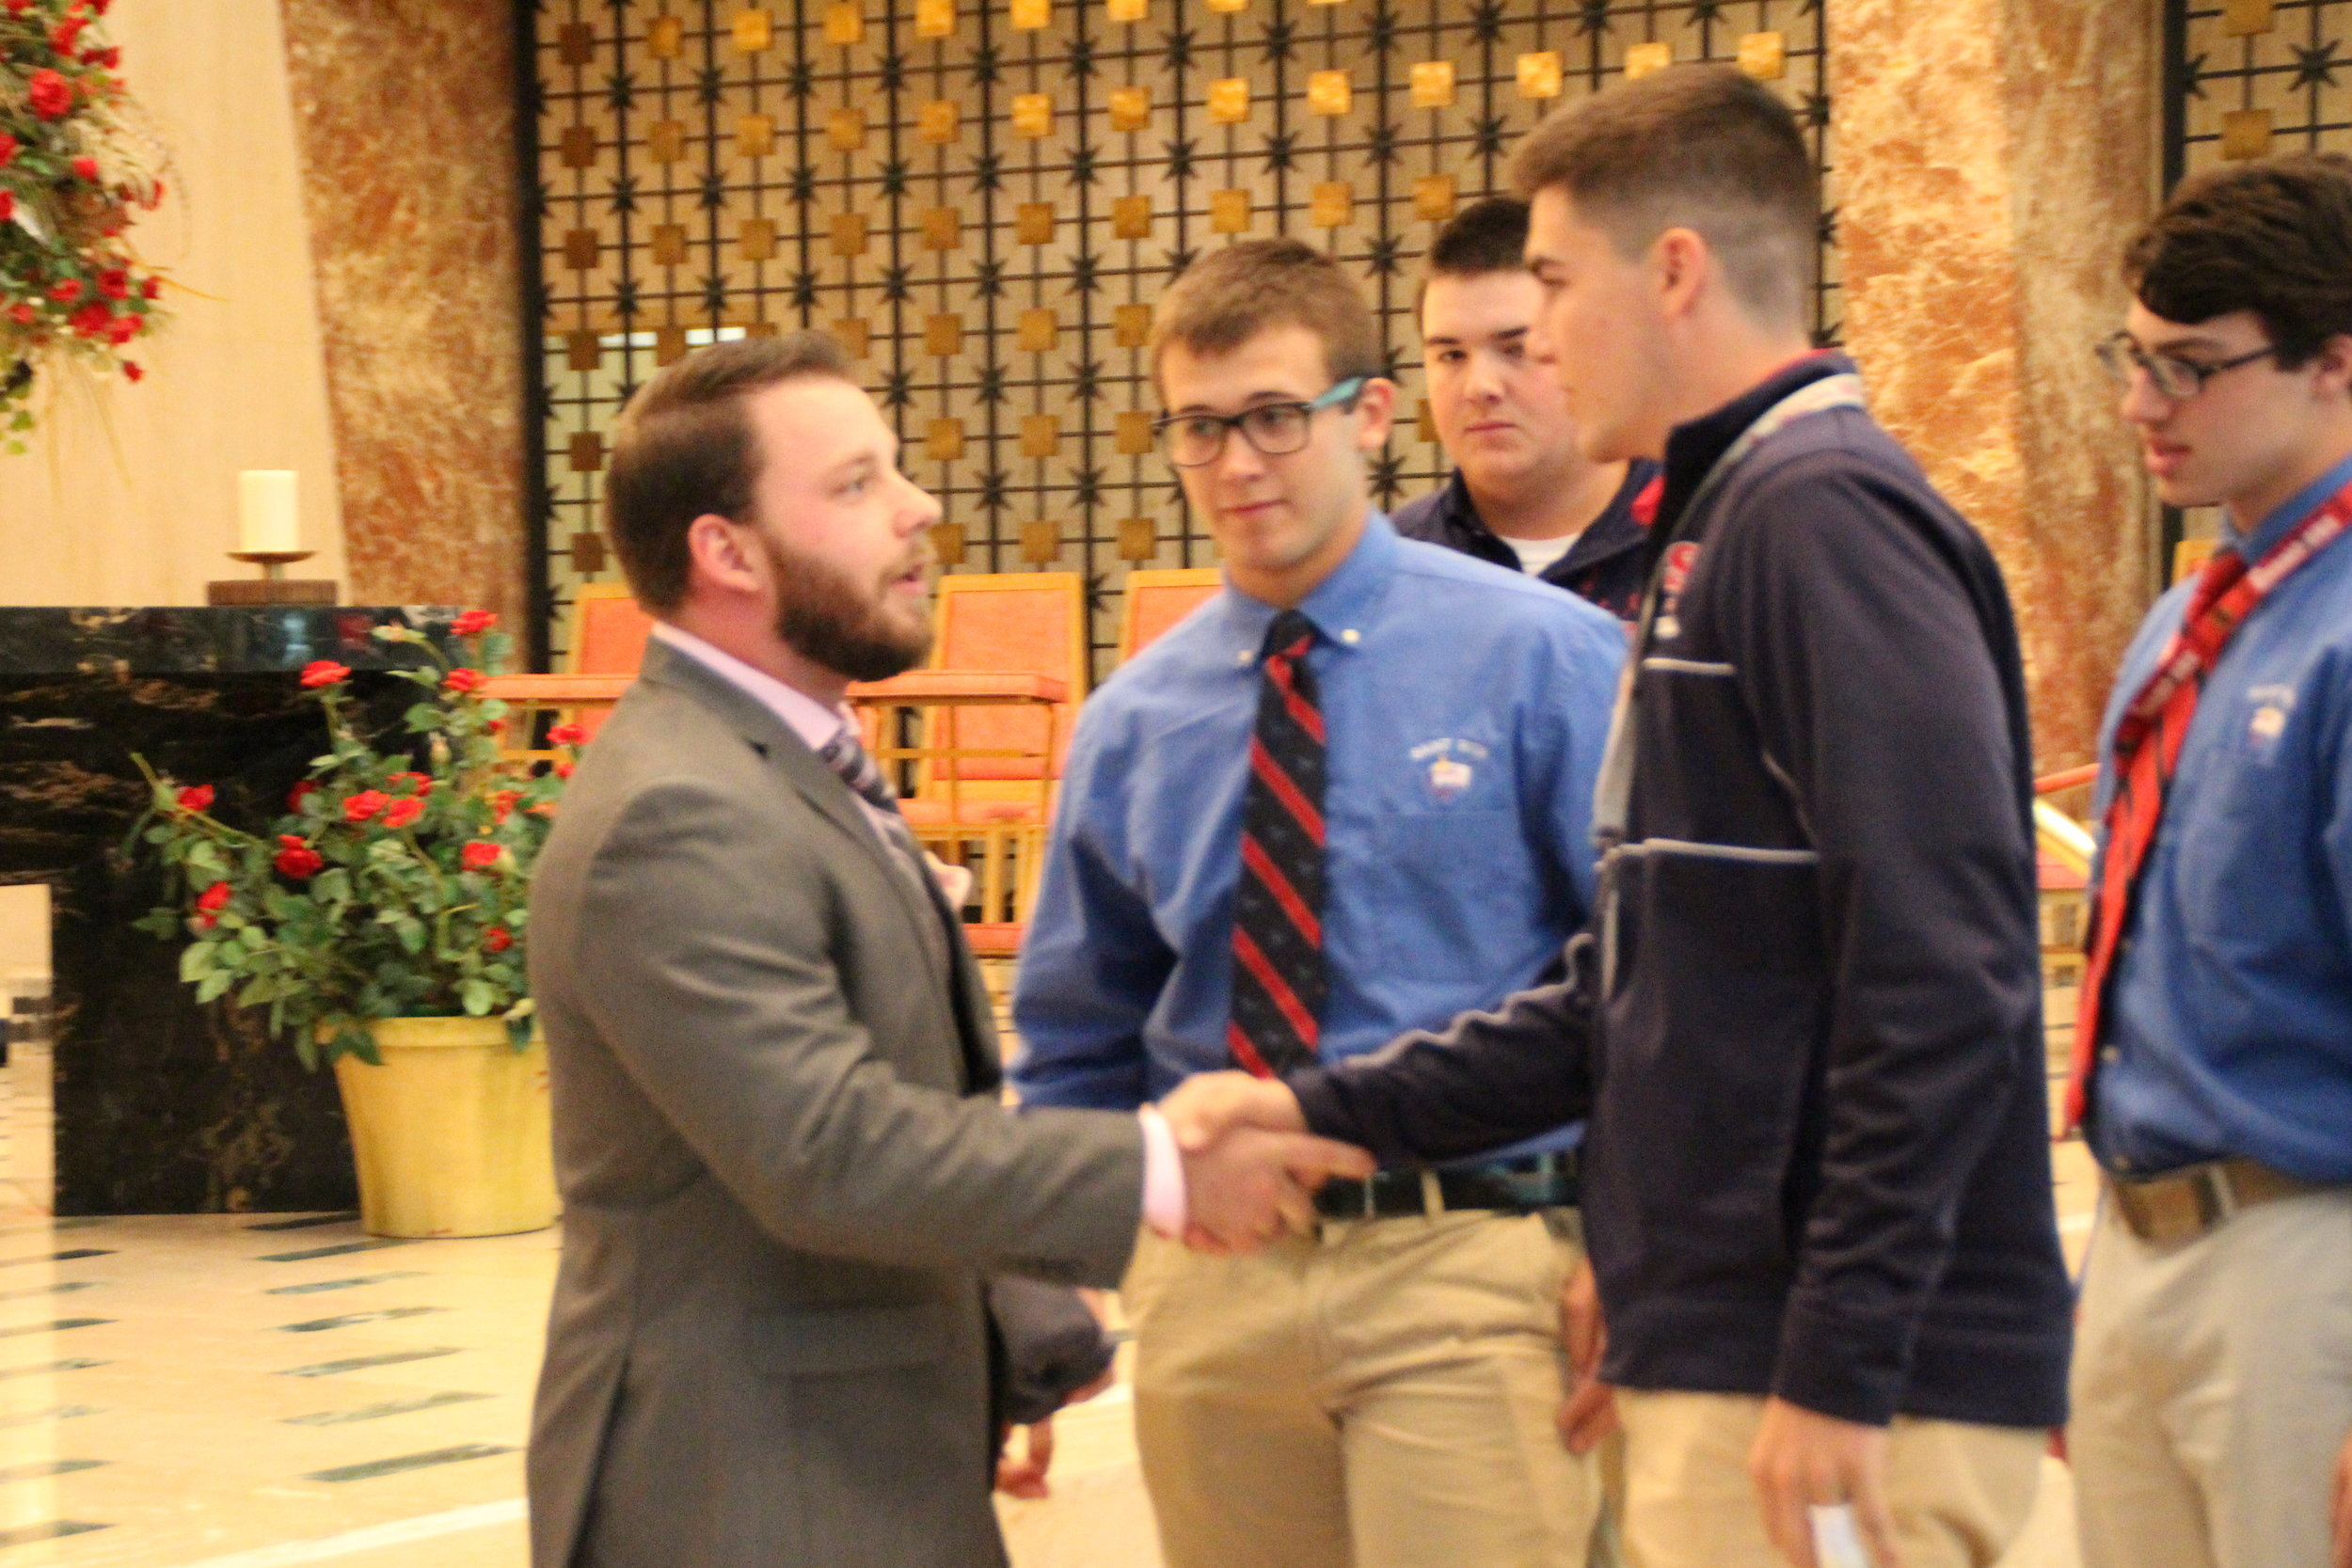 Marine Corps Veteran Dan McLaughlin '09 is thanked for his service by Senior St. Rita Student Government representative Connor Kelly '16.